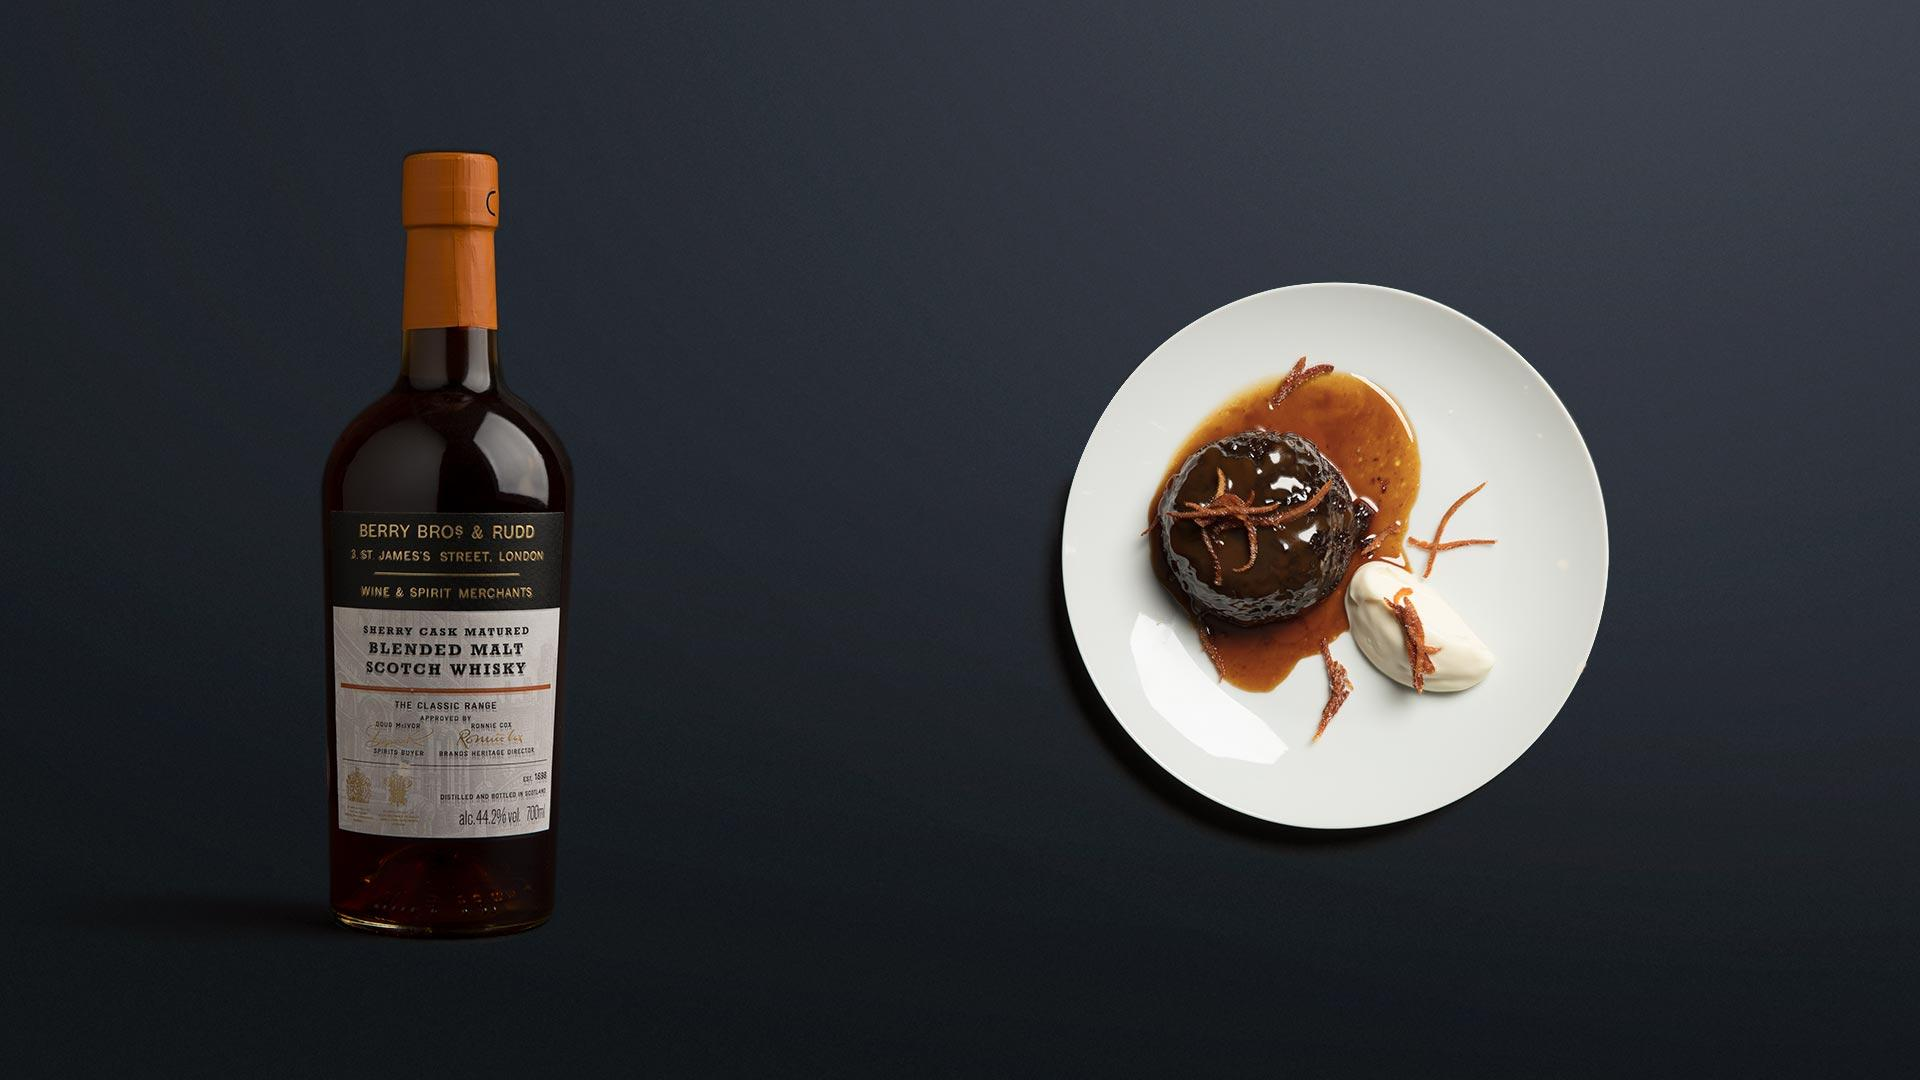 Berry Bros. & Rudd Sherry Cask blended scotch with sticky toffee pudding